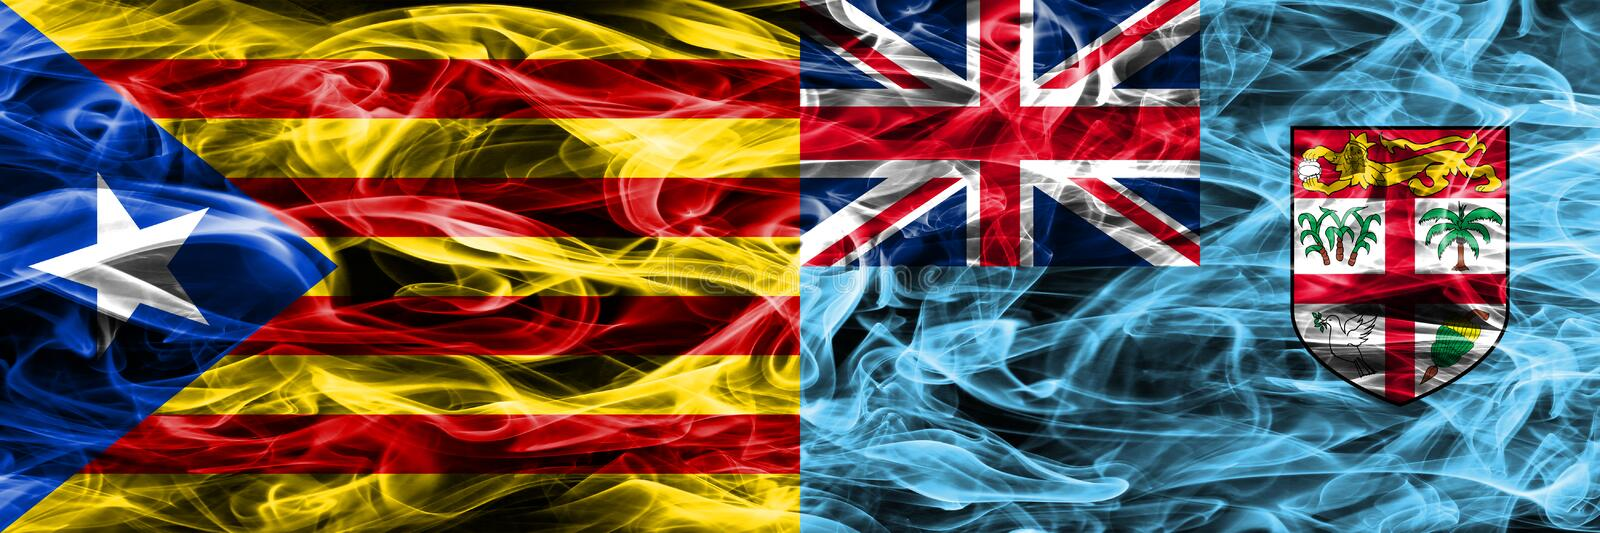 Catalonia vs Fiji copy smoke flags placed side by side. Thick colored silky smoke flags of Catalan and Fiji copy.  royalty free illustration